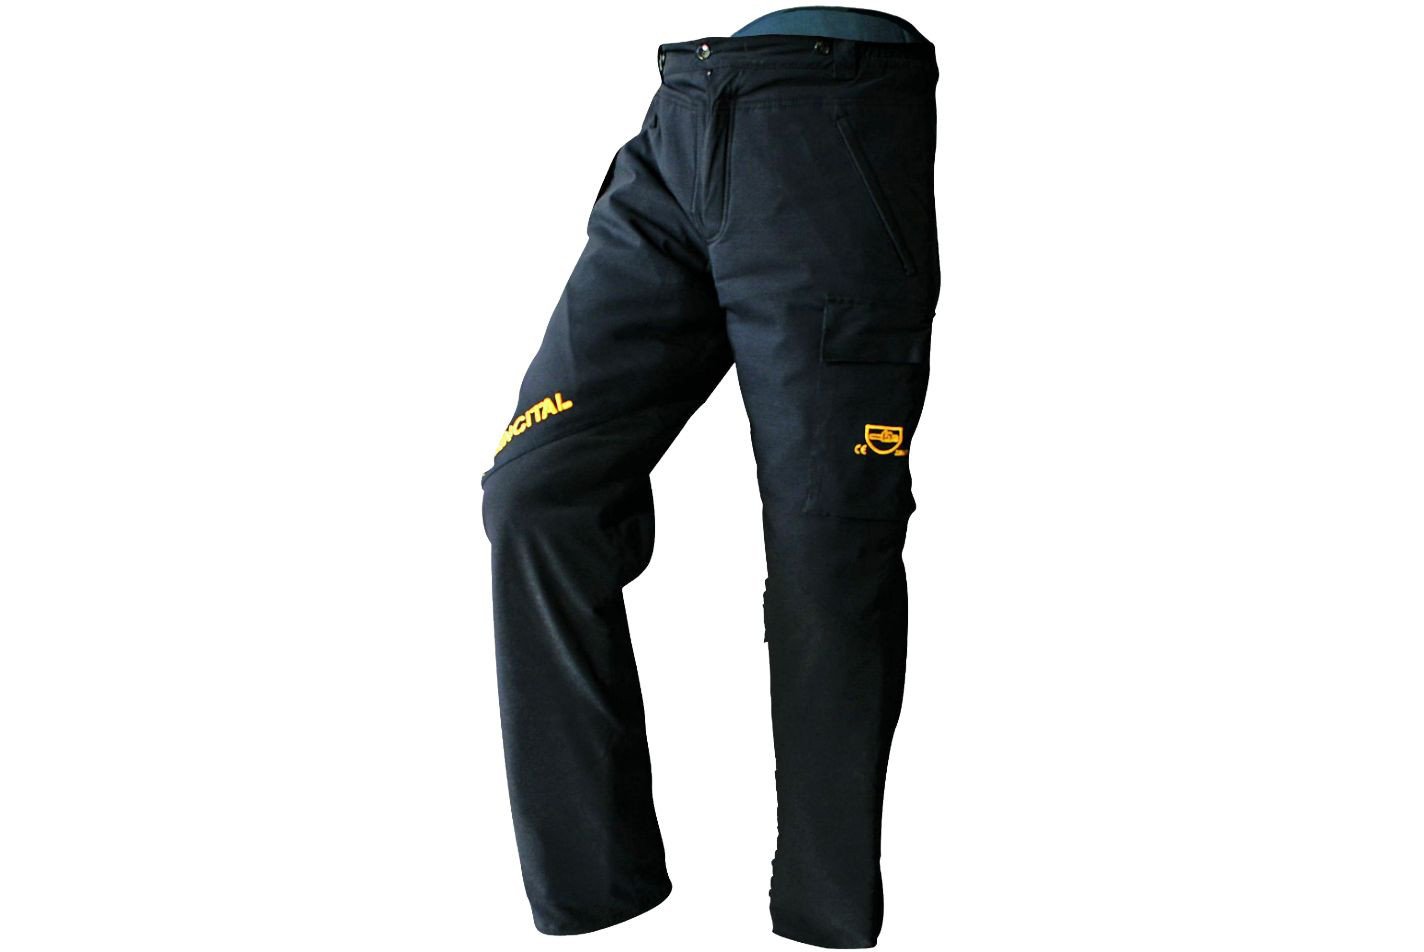 Pantalon anticoupure Francital Everest «super confort»